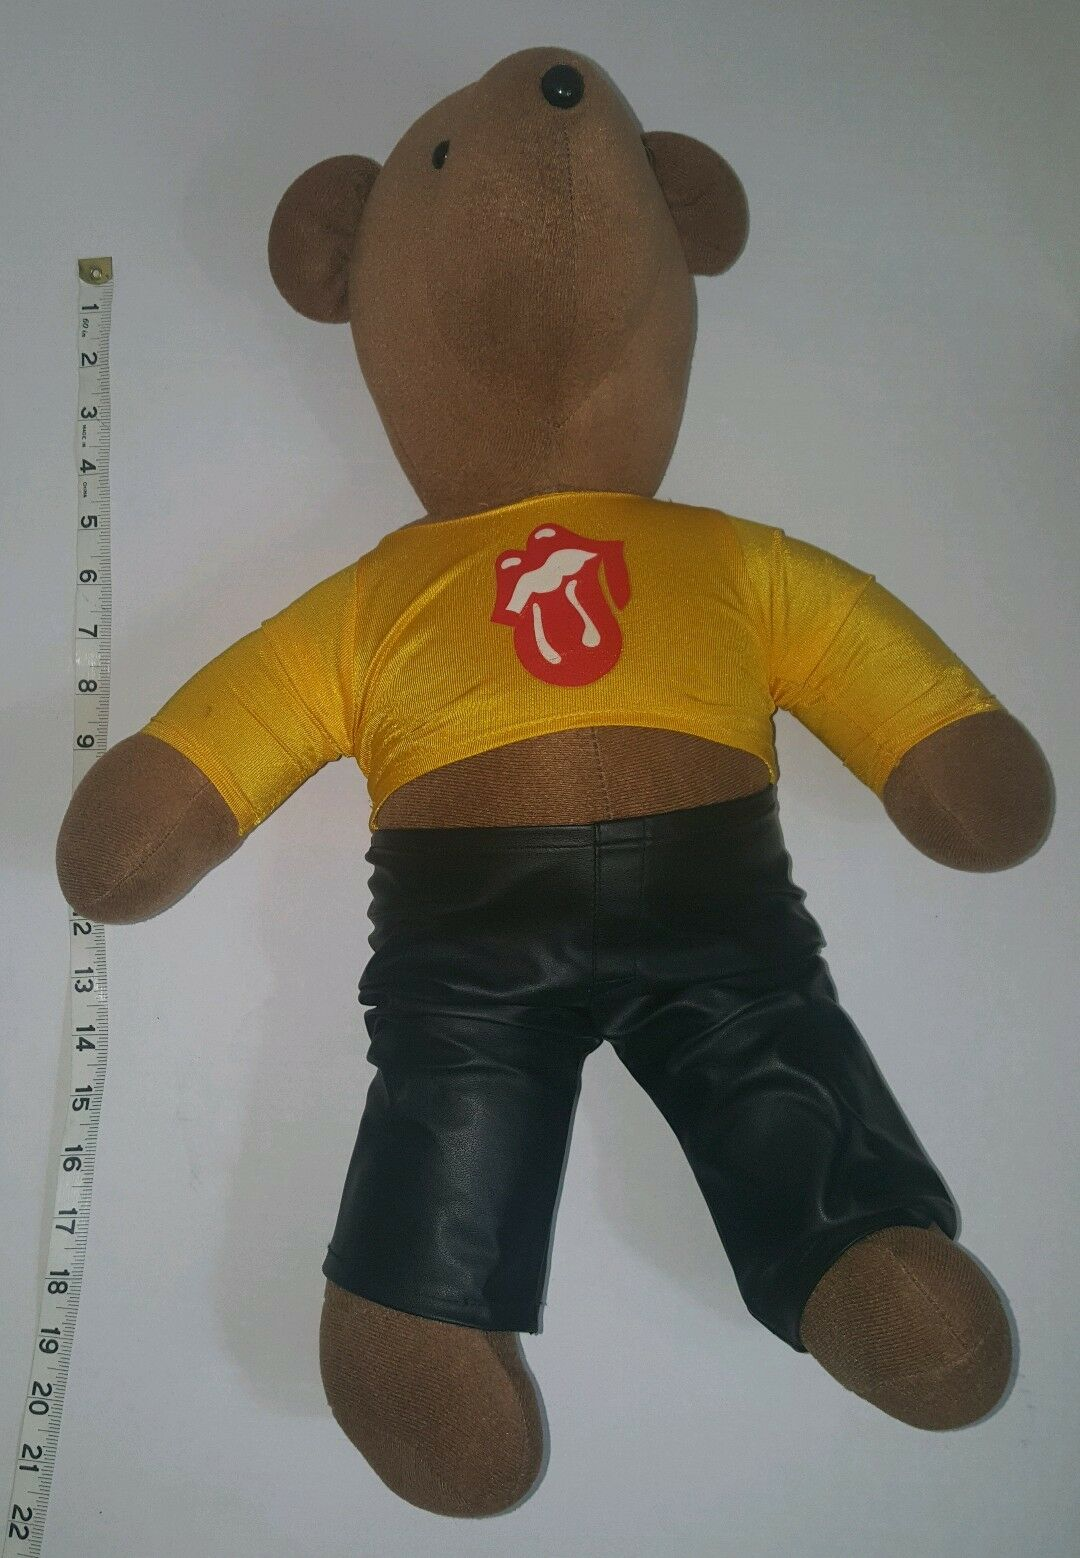 Vintage North American Bear Co 1979 Rolling Rolling Rolling Stones T Shirt Leather Pants No Tag 2827c6